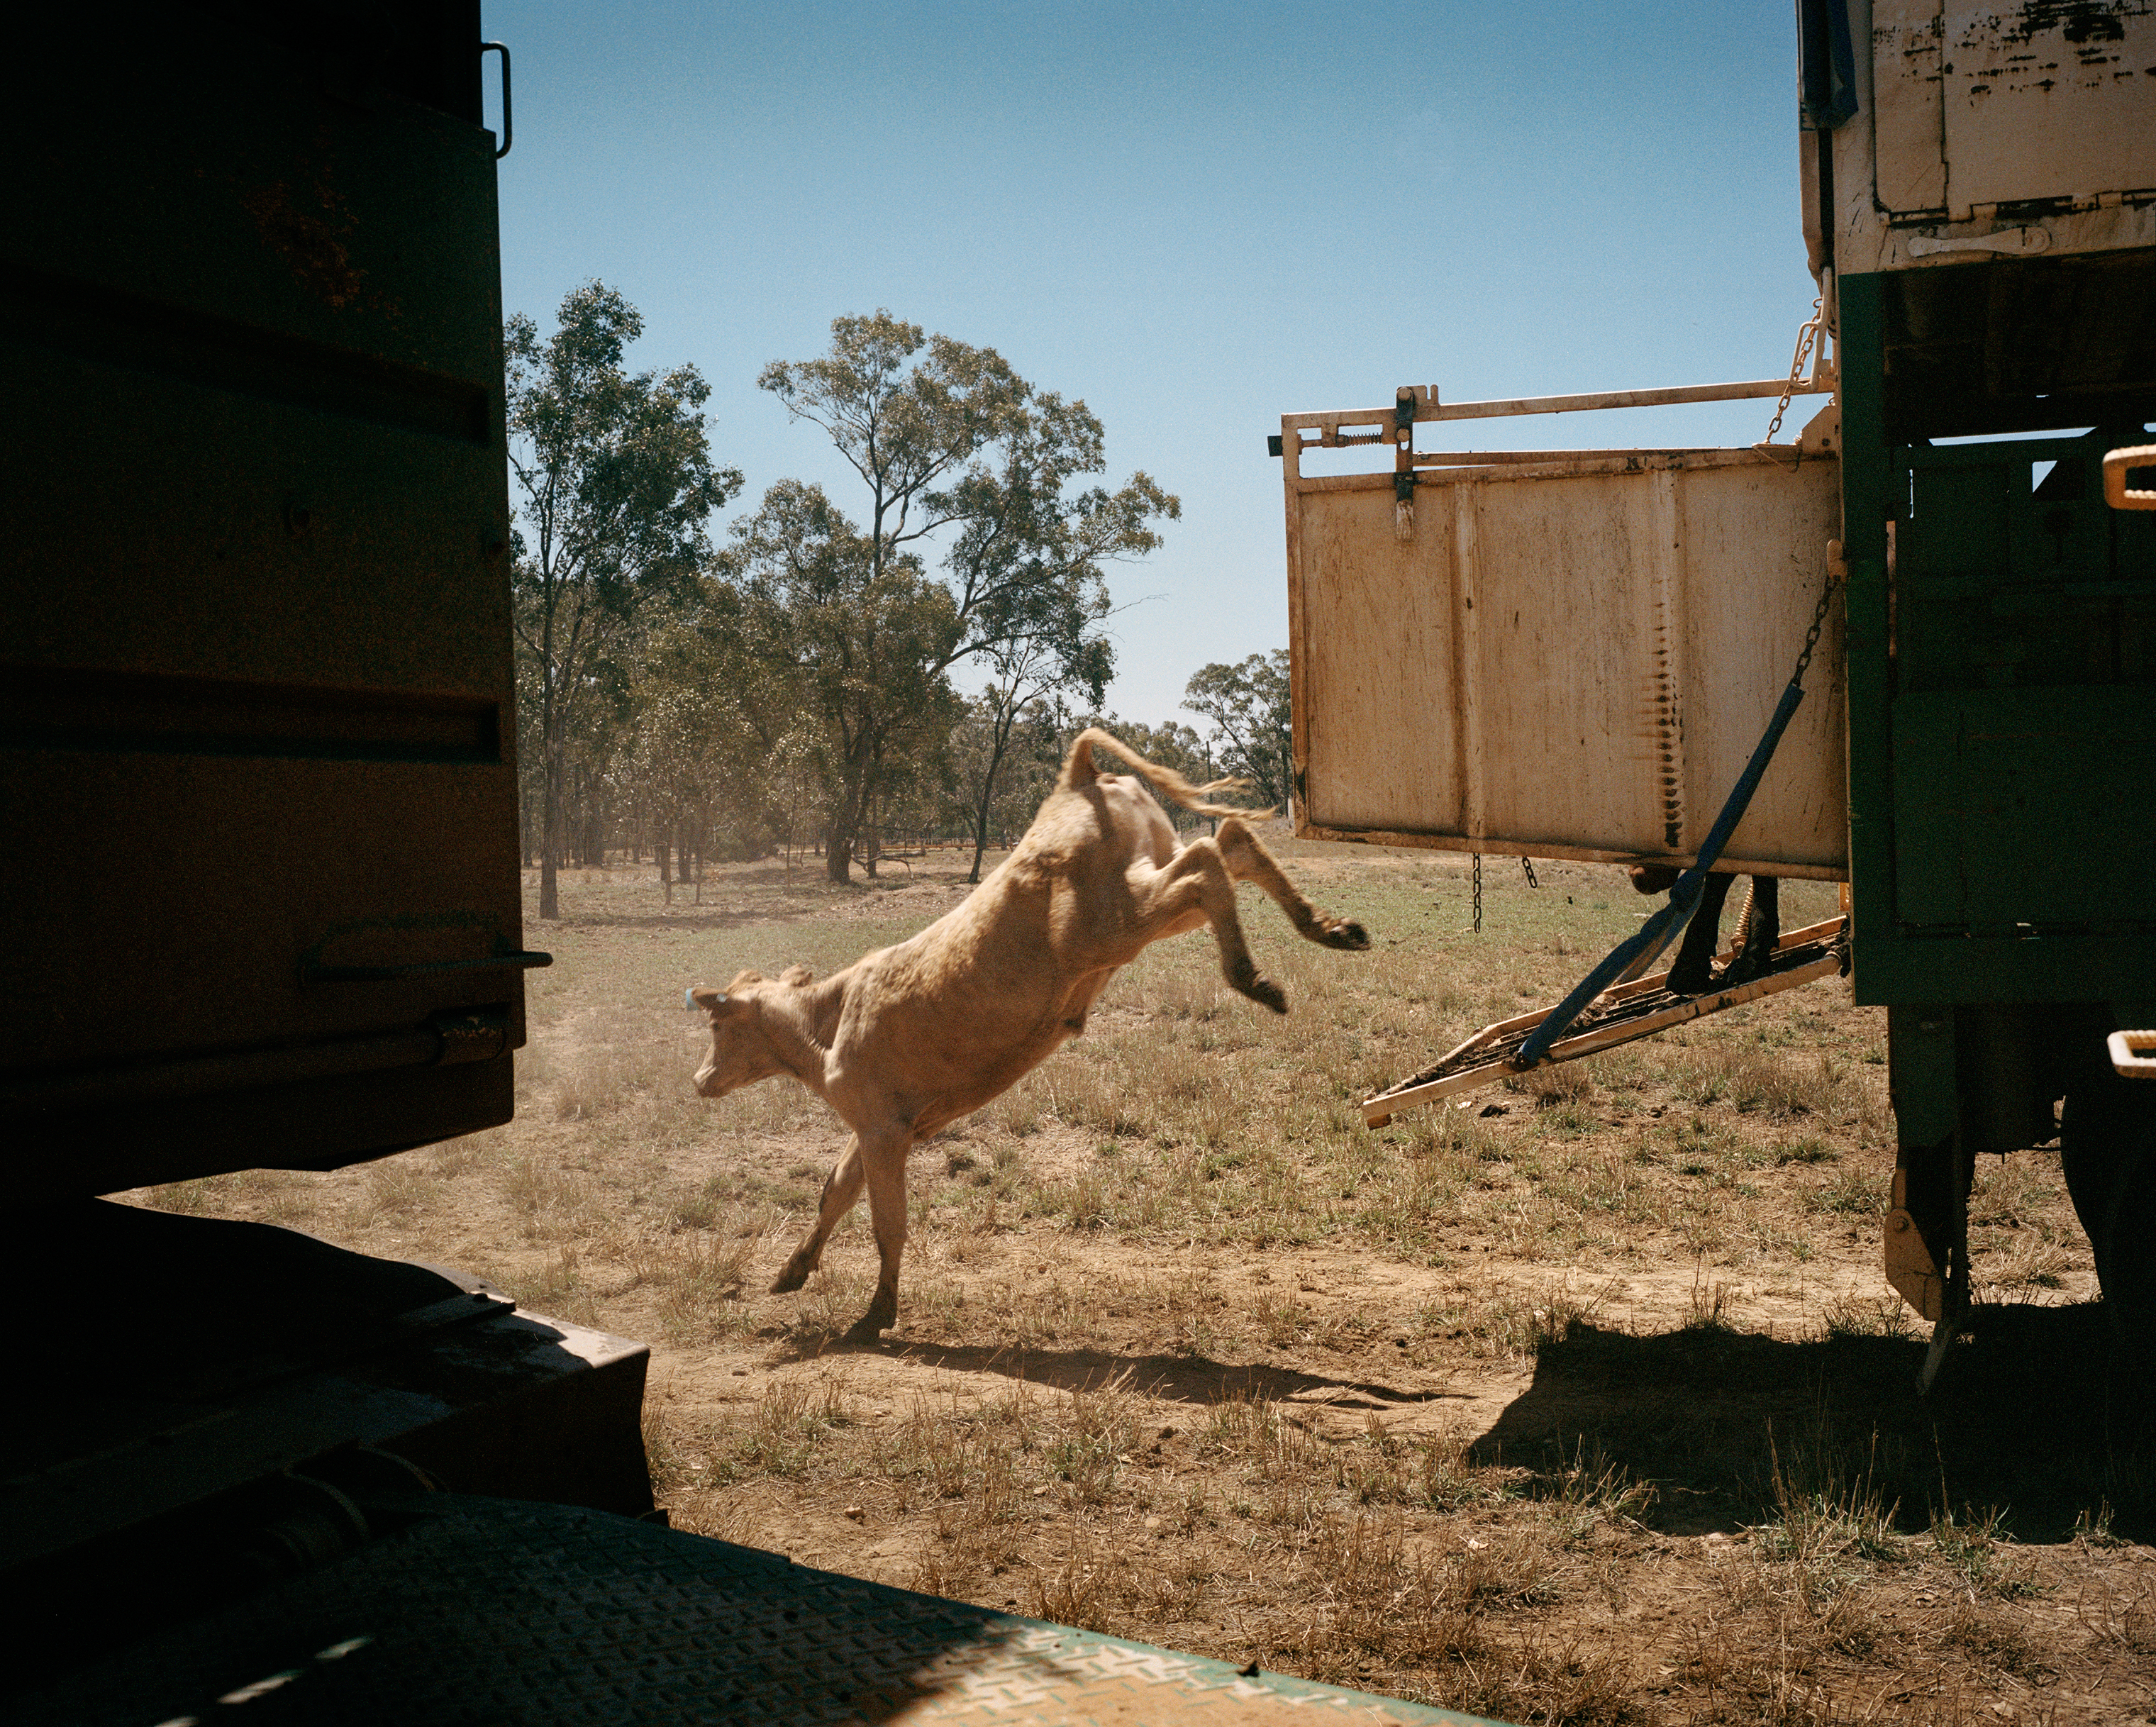 A cow jumps off a truck at Dulbydilla stock route in Queensland in November. Drover Billy Skinner receives cattle that have been trucked from a drought-affected area near Tambo and will be droved to an area with adequate feed.